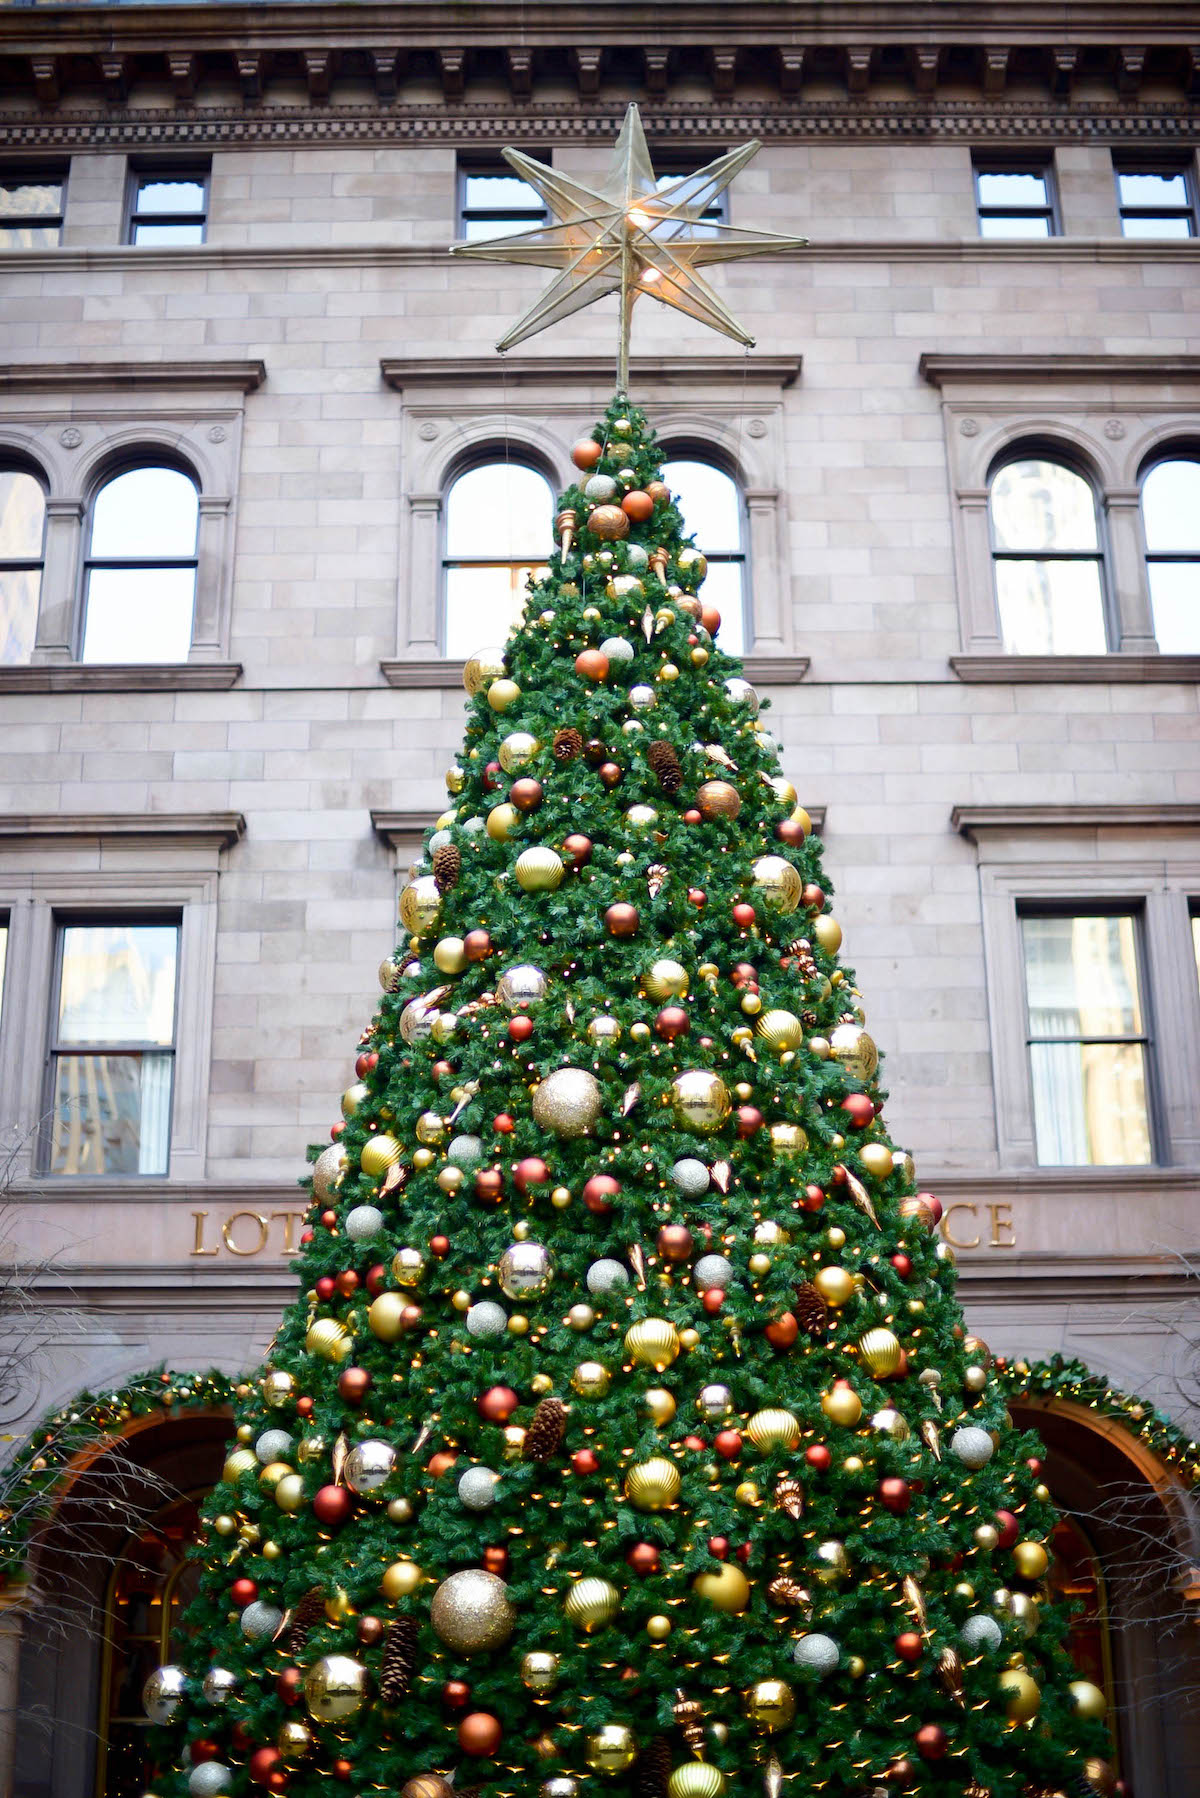 Lotte New York Palace Hotel Christmas Tree | New York City Holiday Guide